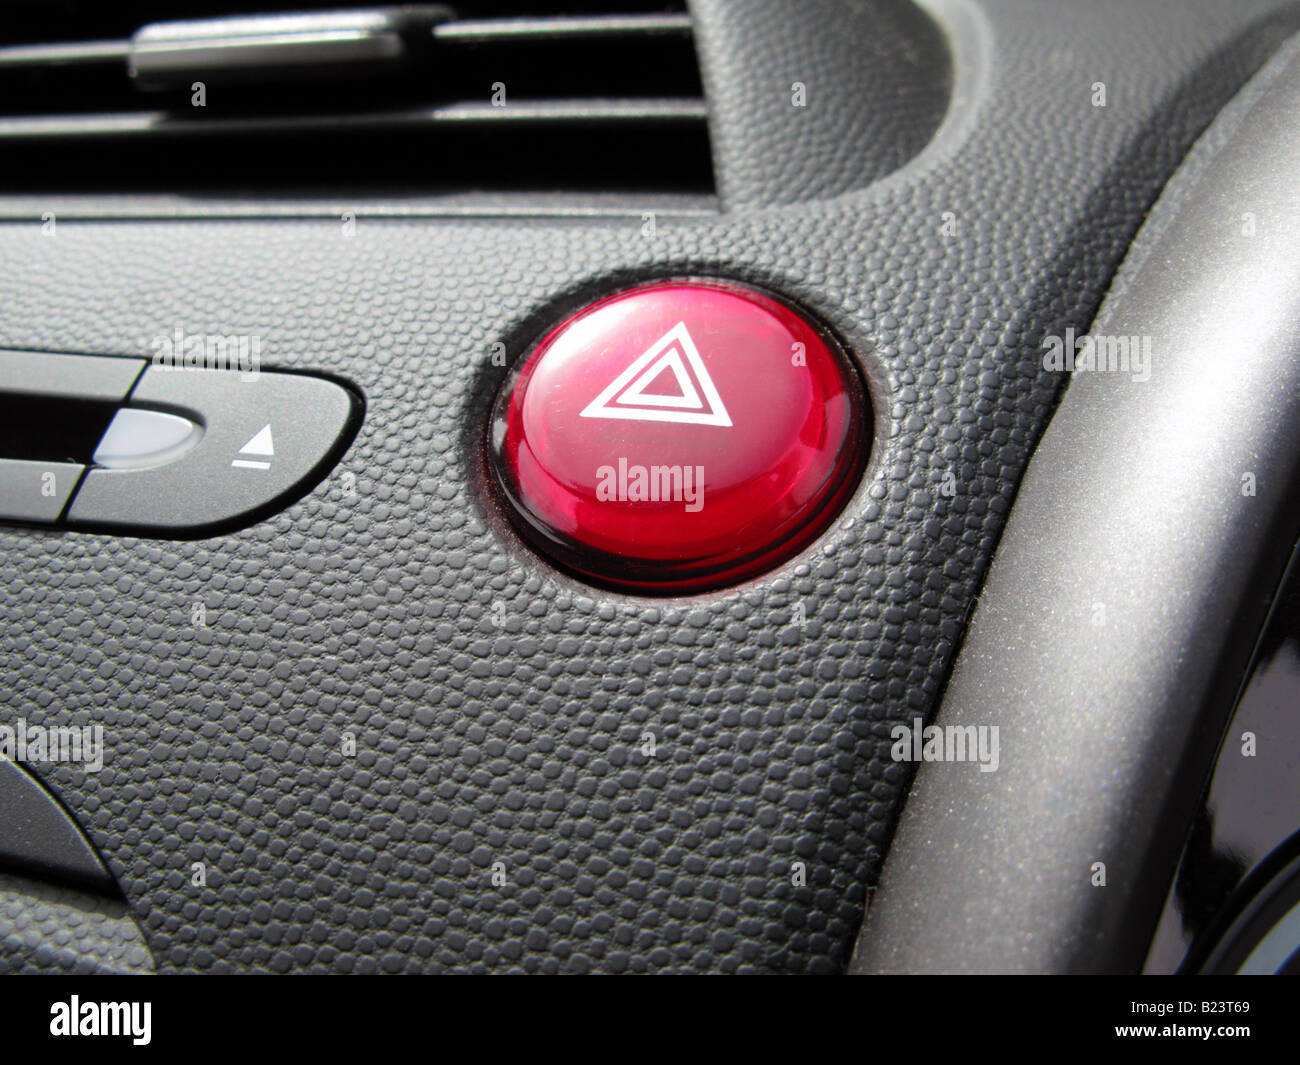 Red Hazard Warning Light Button On Dashboard Of Honda Civic   Stock Image